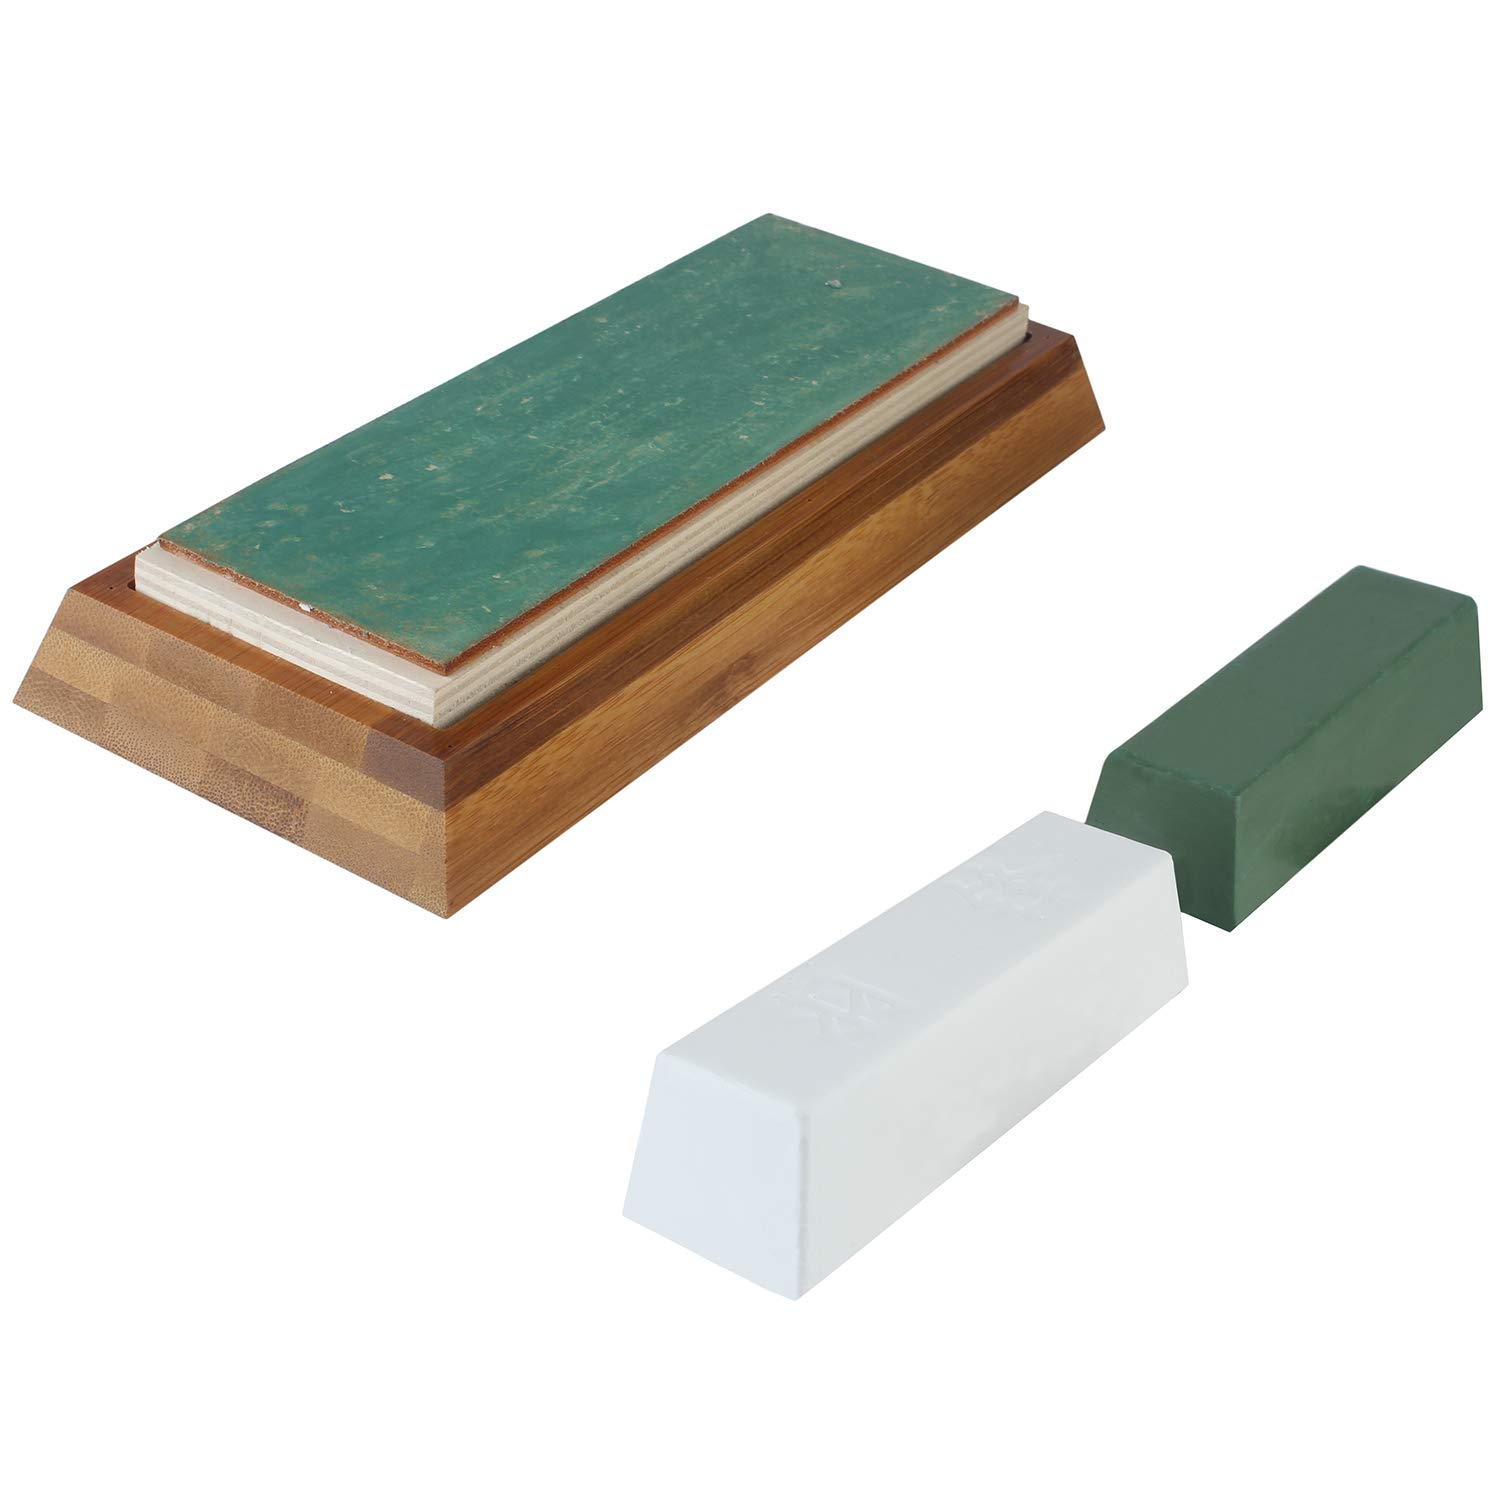 7x2 4 inch Leather Strop Honing Strop for Knife Sharpening with Green&White  Buffing Compound & Antislip Bamboo Block